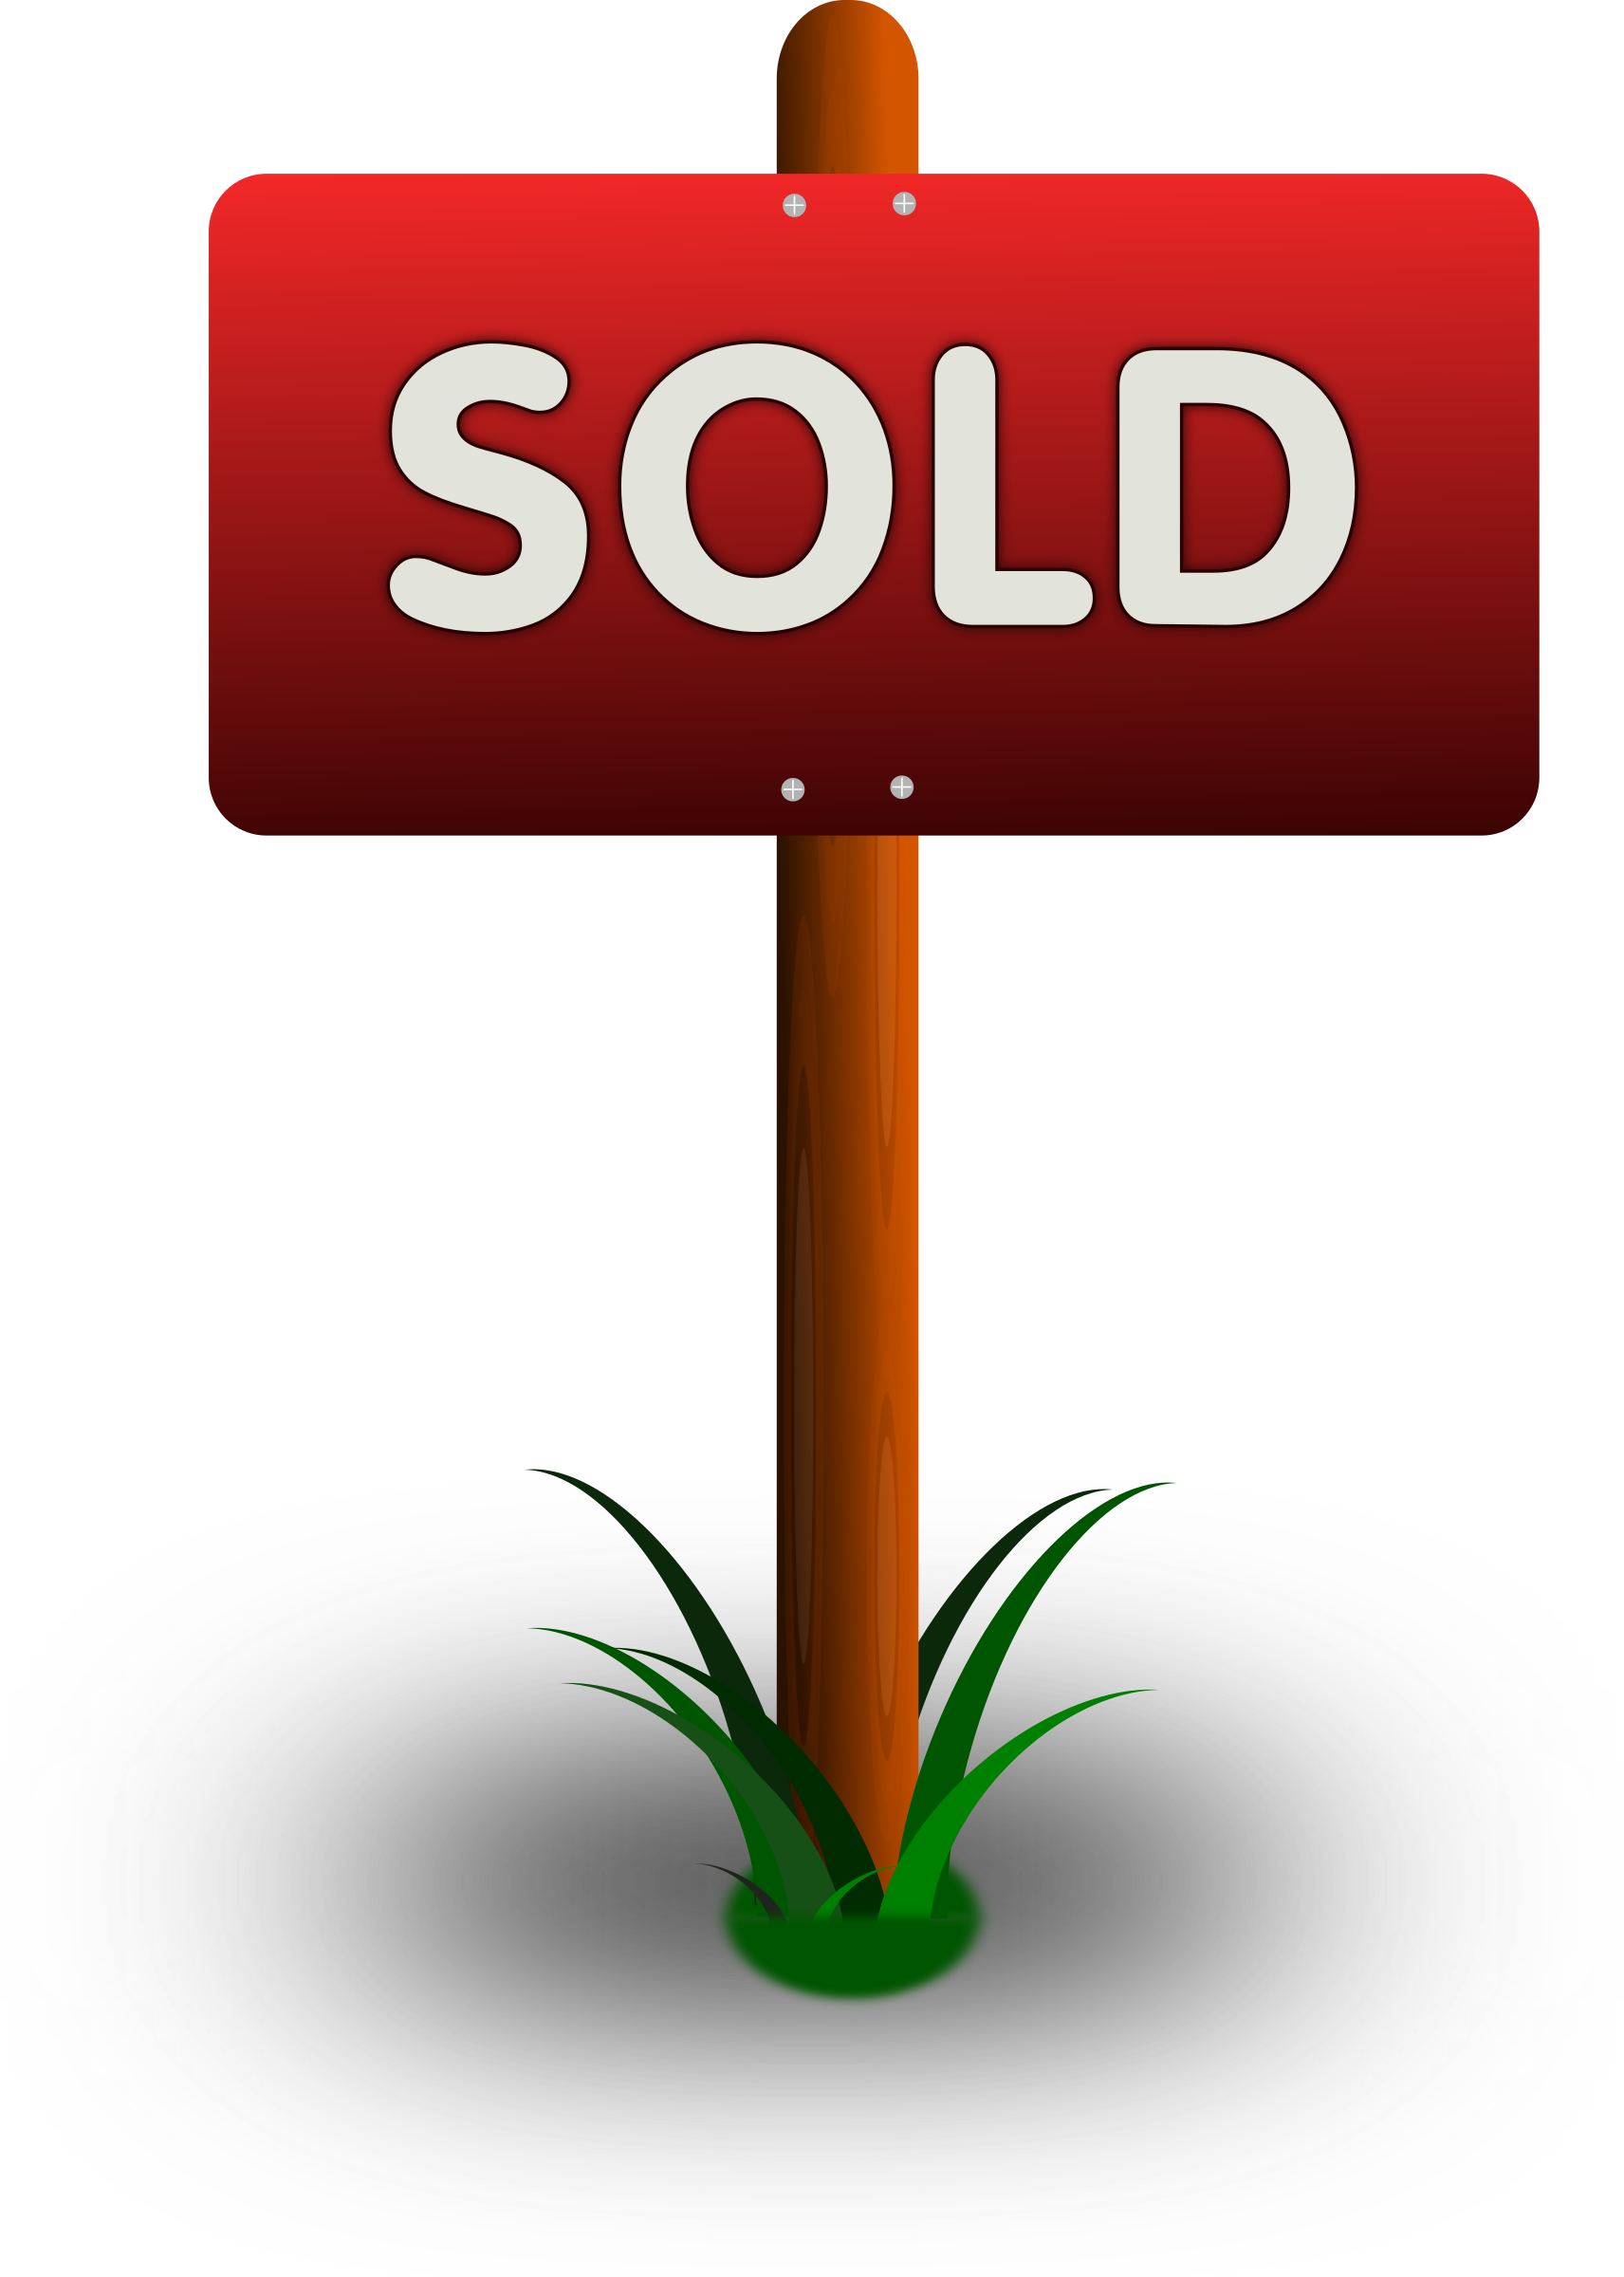 Sold Sign by gsagri04